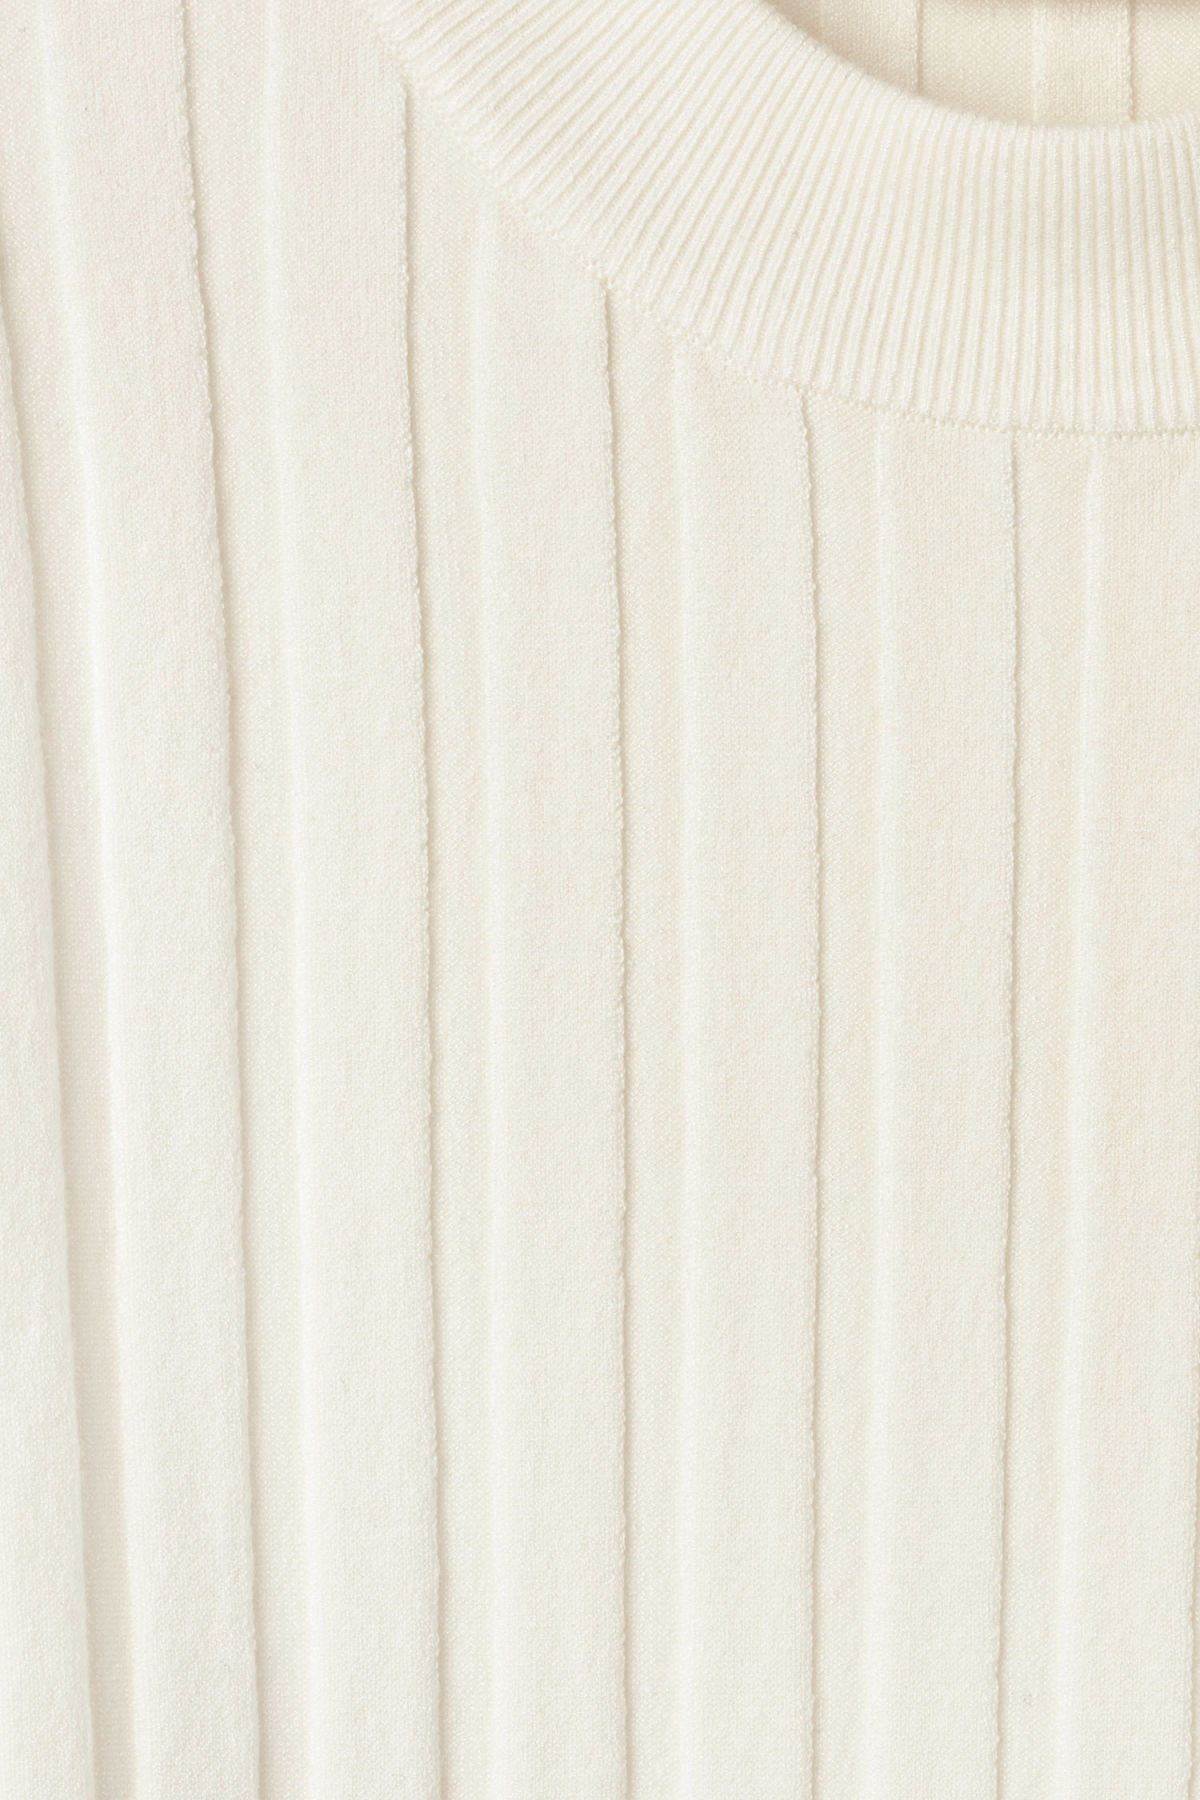 Detailed image of Weekday turl sweater in white